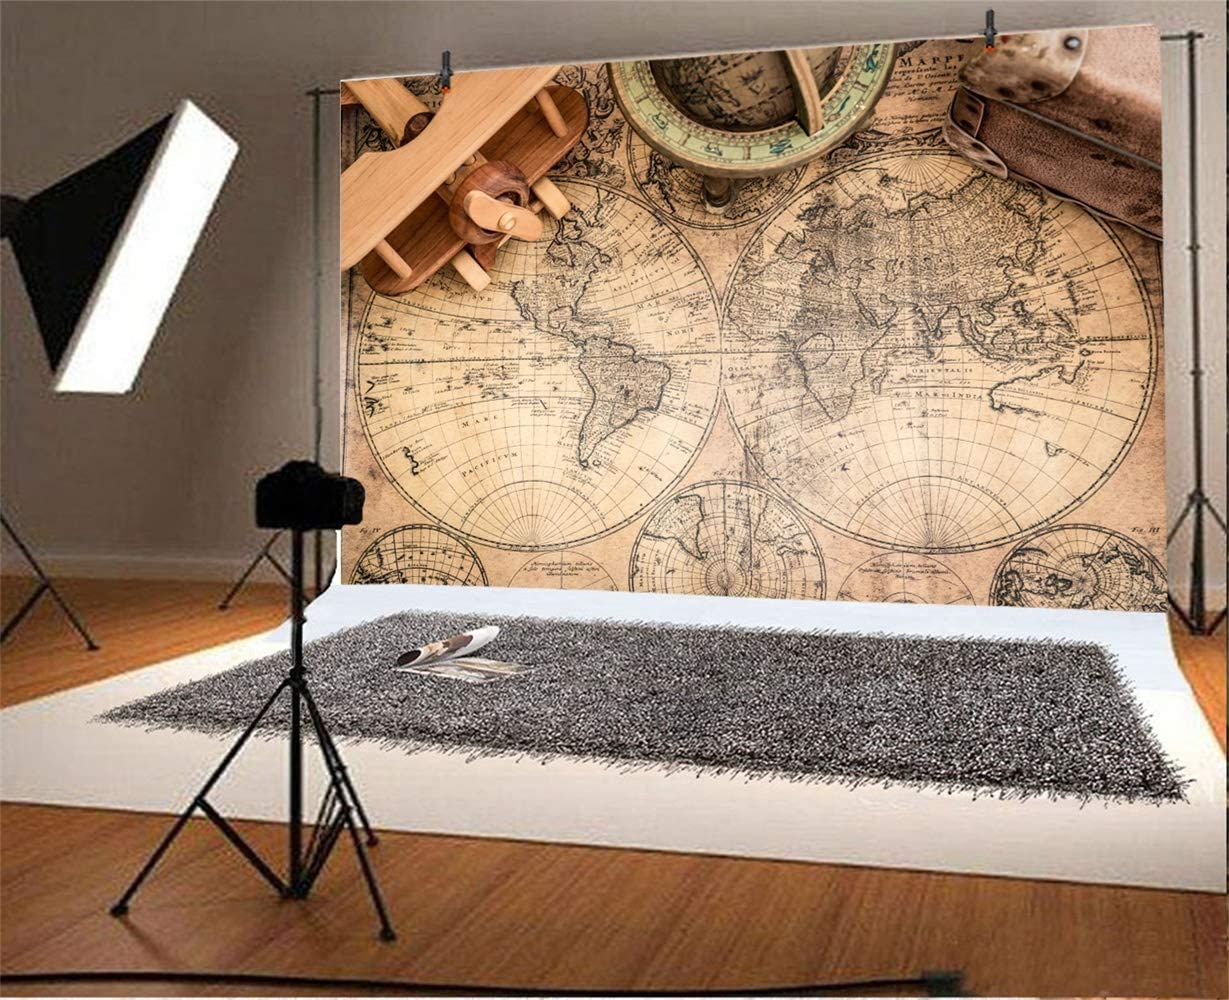 Laeacco 10x7ft Retro Northern and Southern Hemisphere Map Wooden Airplane Model Vinyl Photography Background Geologic Series Backdrop Adult Portrait Shoot Indoor Decors Wallpaper Studio Props